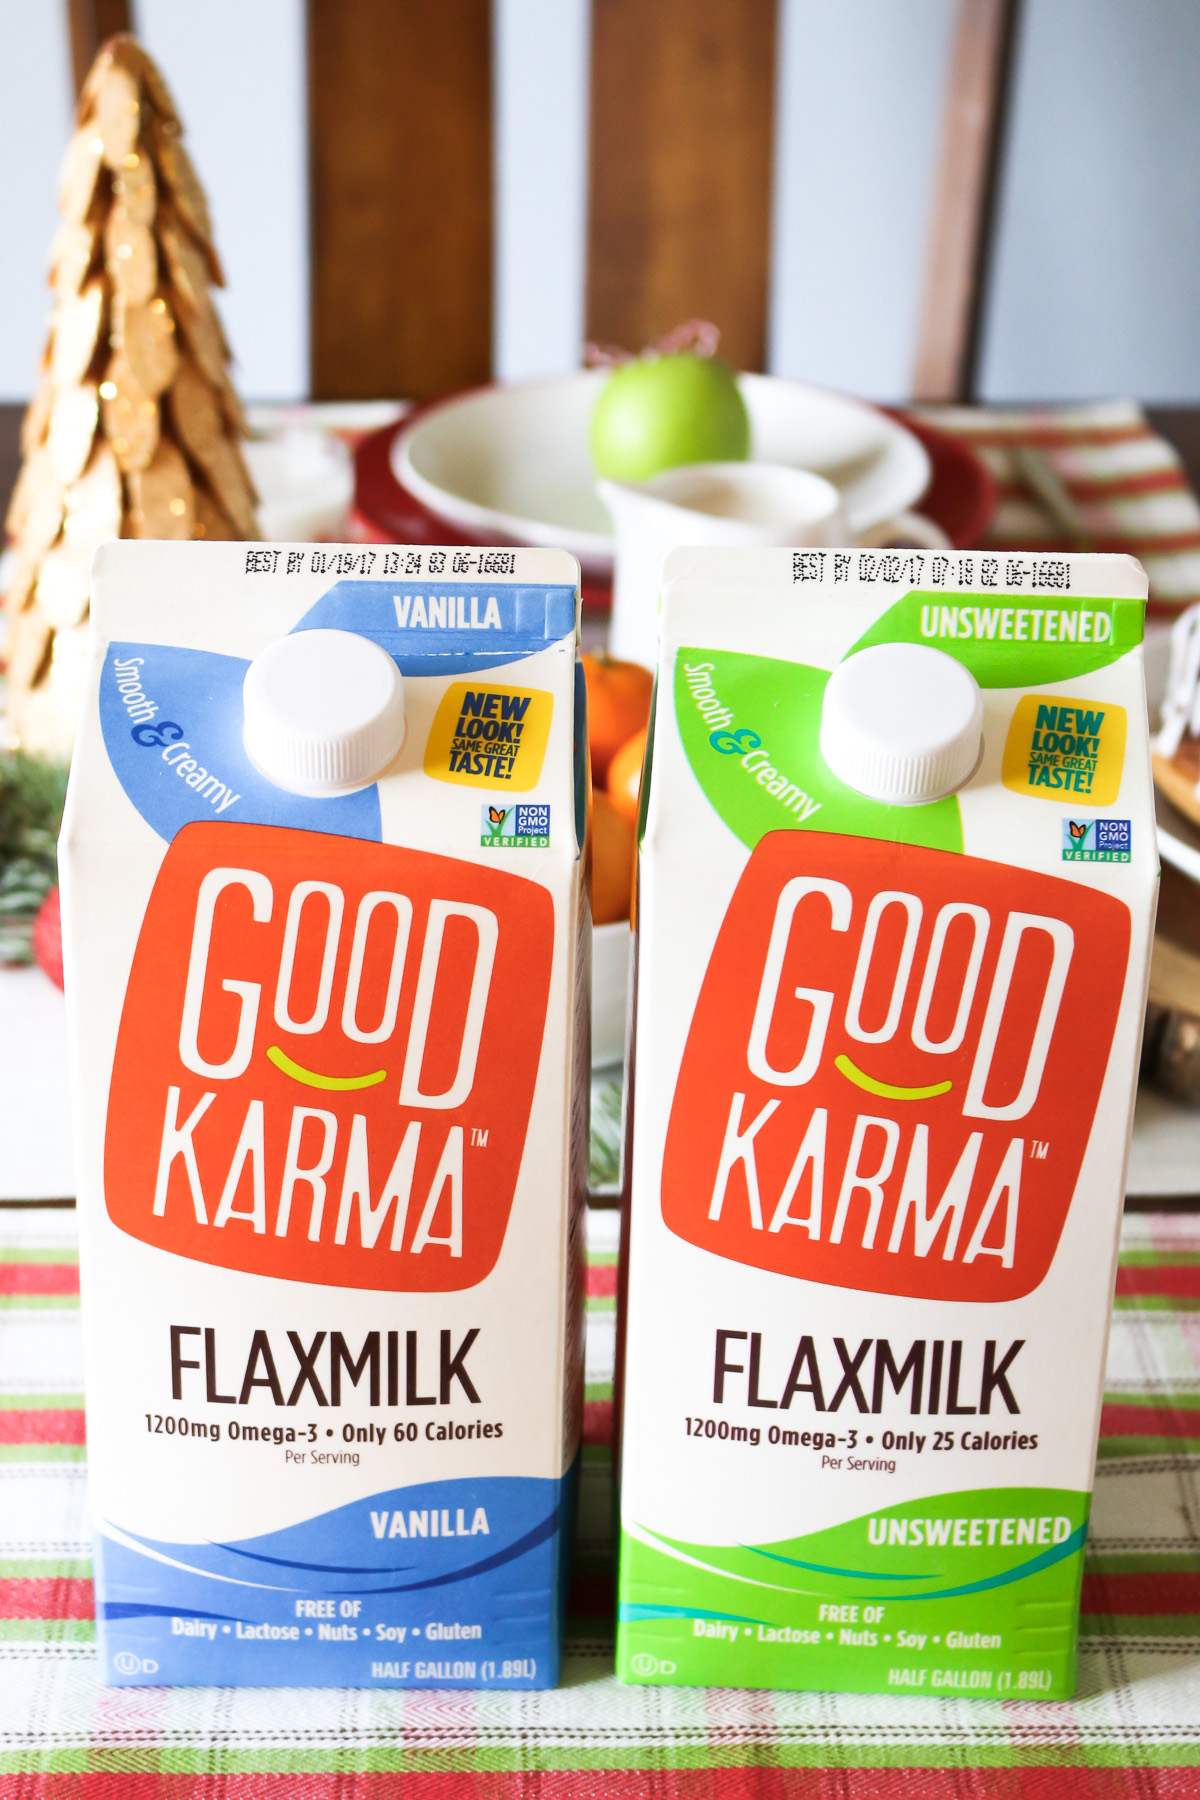 Good Karma Flaxmilk. Rich in Omega-3's and free of the top allergens.